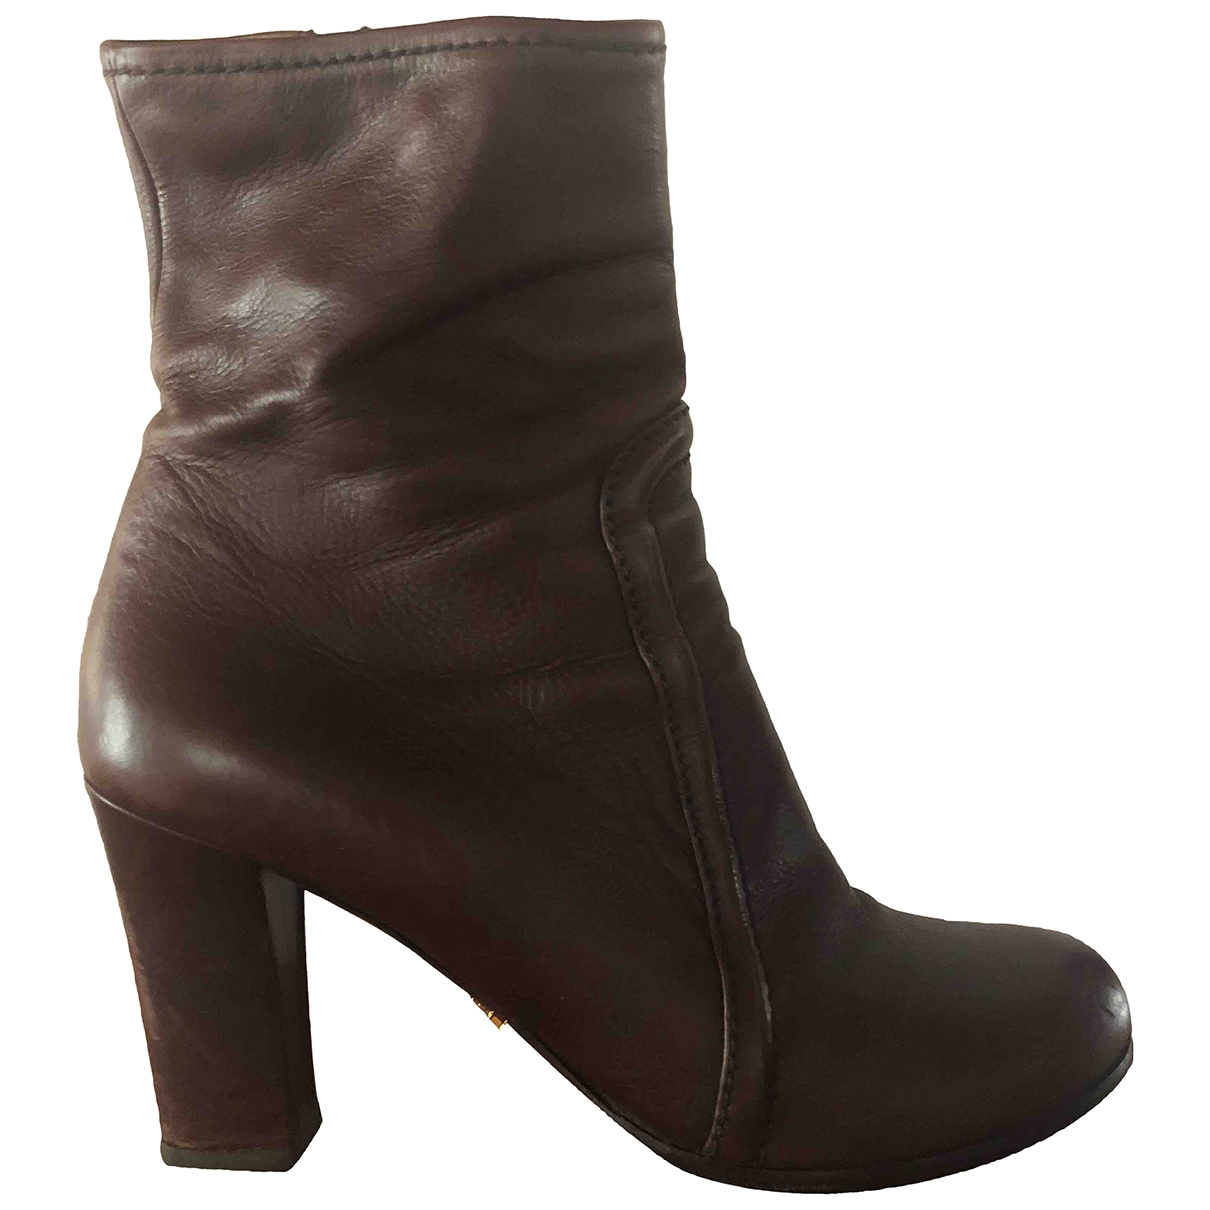 Prada \N Burgundy Leather Ankle boots for Women 37 EU